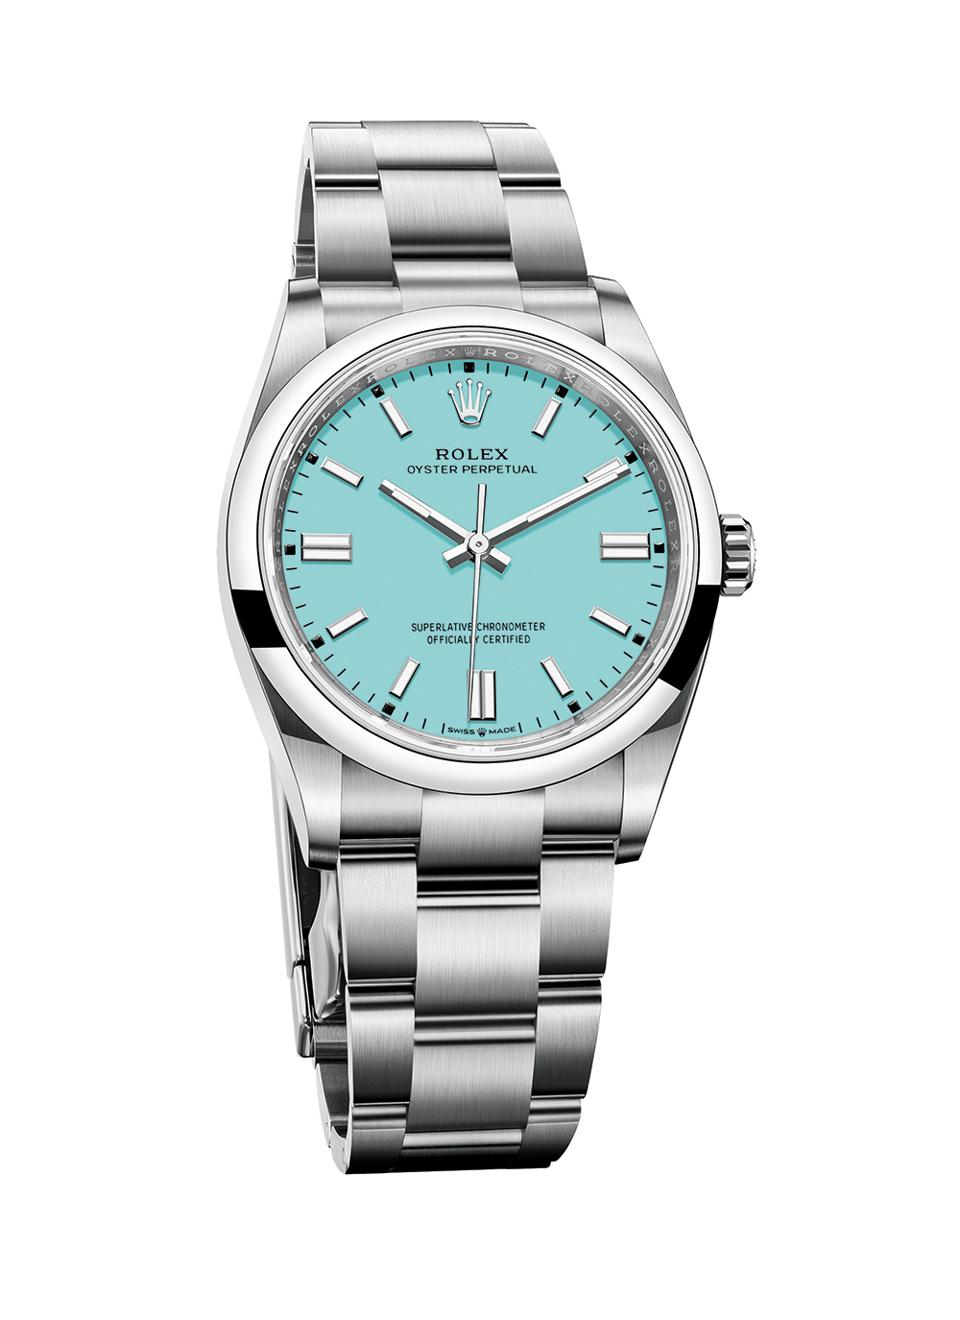 Image result for Oyster Perpetual